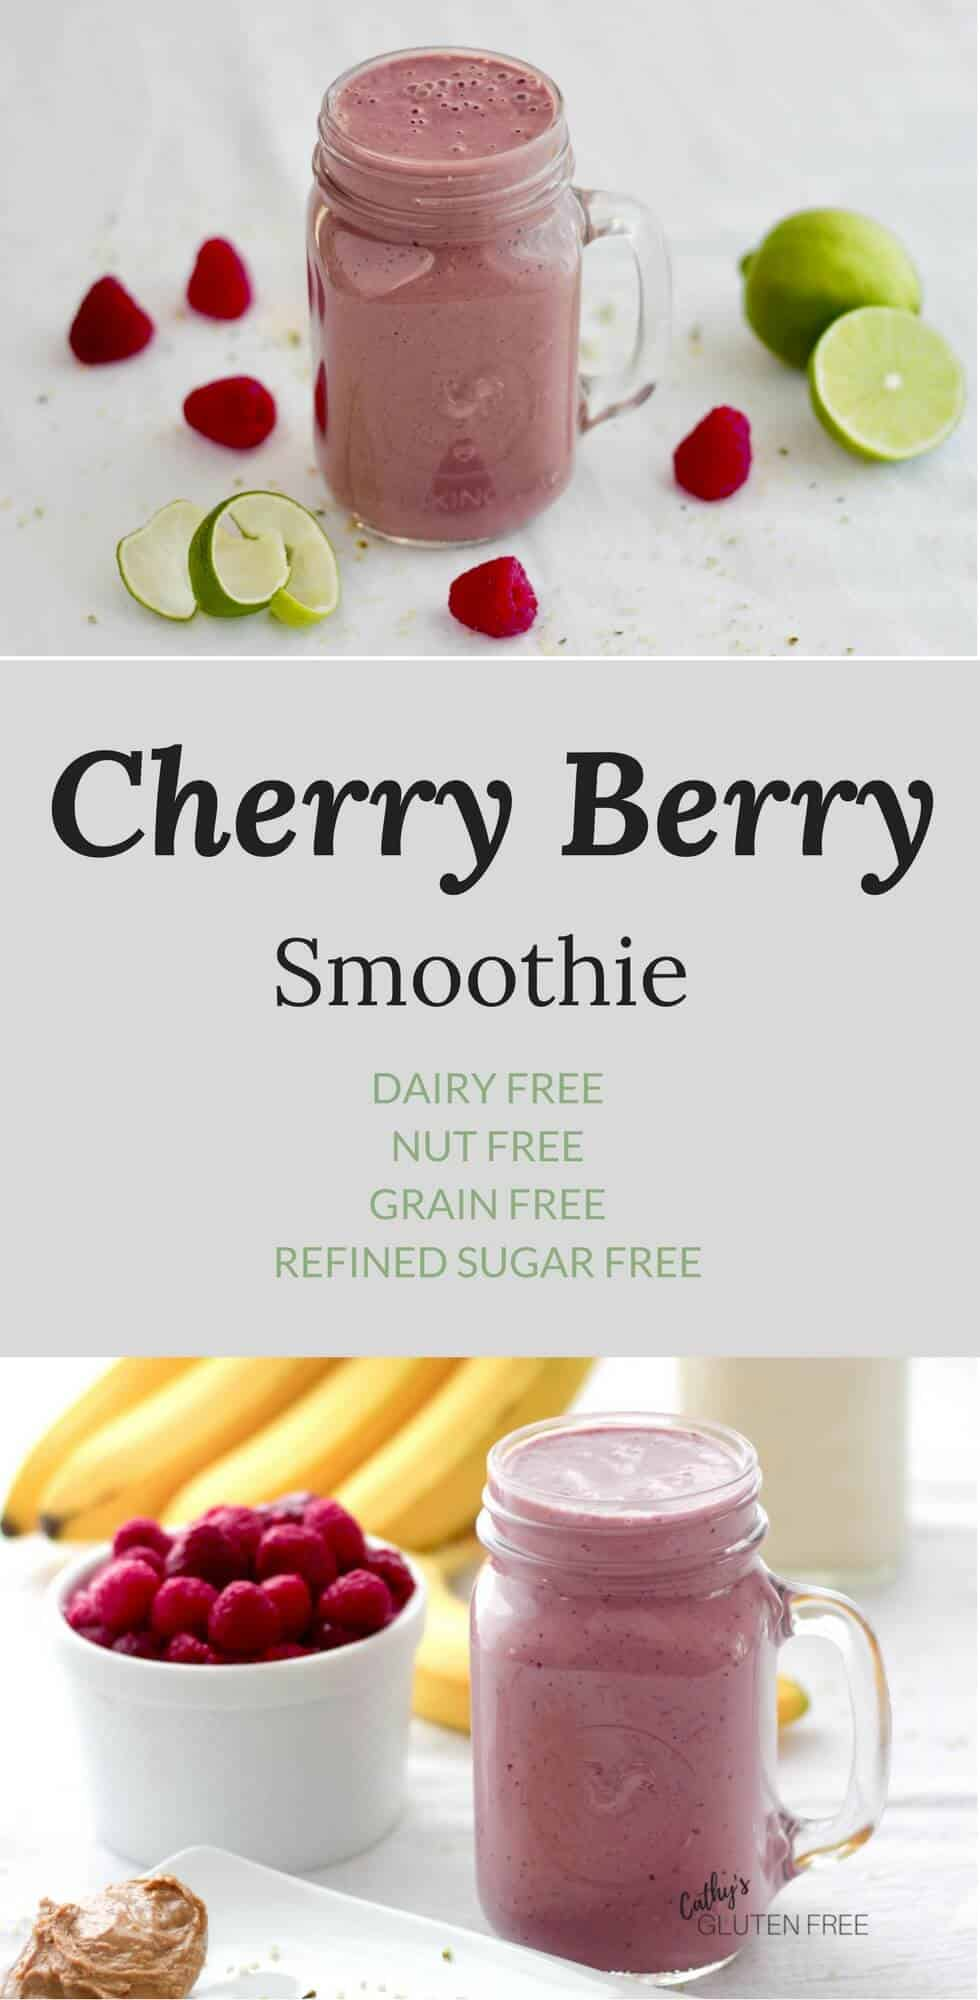 Cherry Berry Smoothie is smooth, creamy, and delicious! It's dairy free, grain free, vegan, nut free, and refined sugar free.